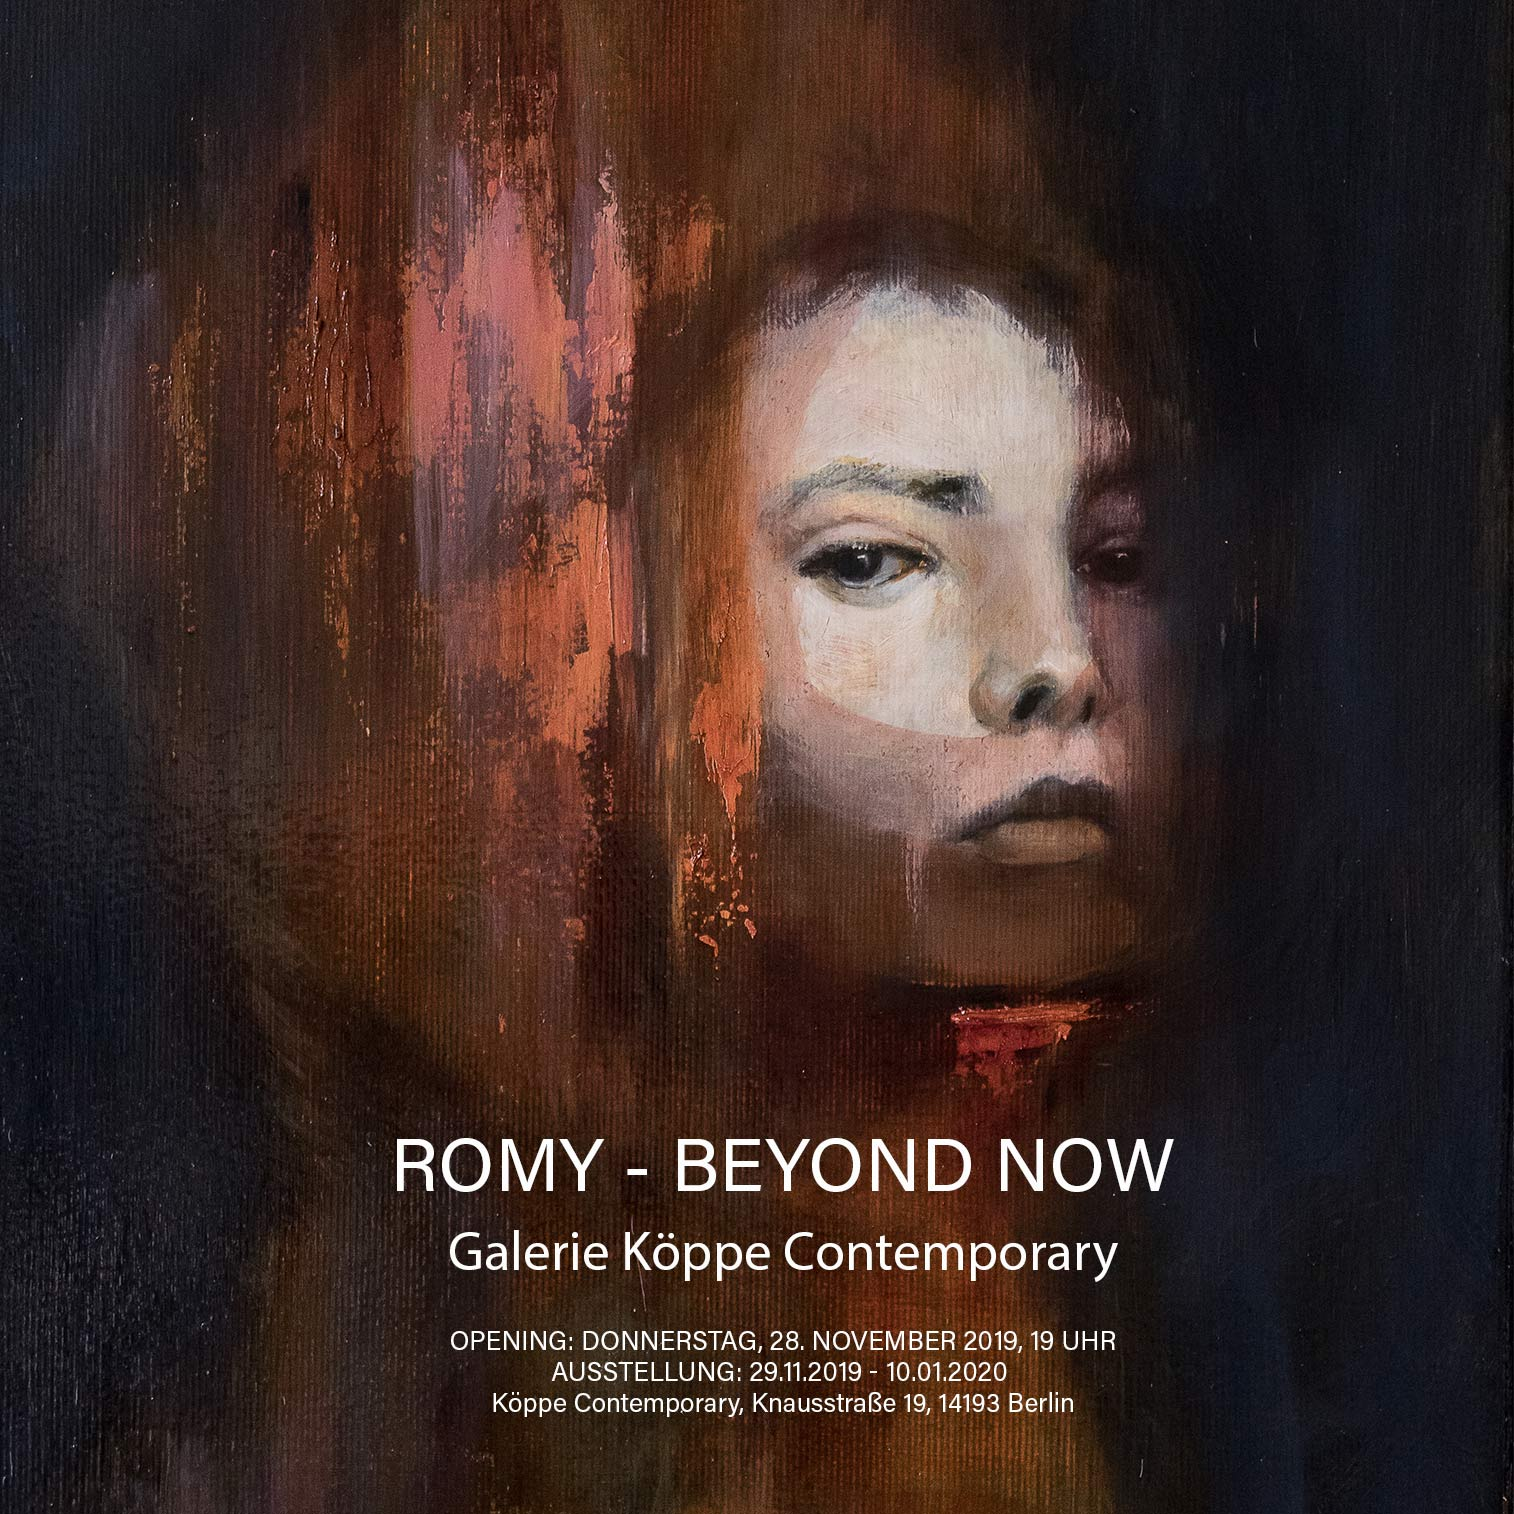 ROMY - BEYOND NOW - Köppe Contemporary